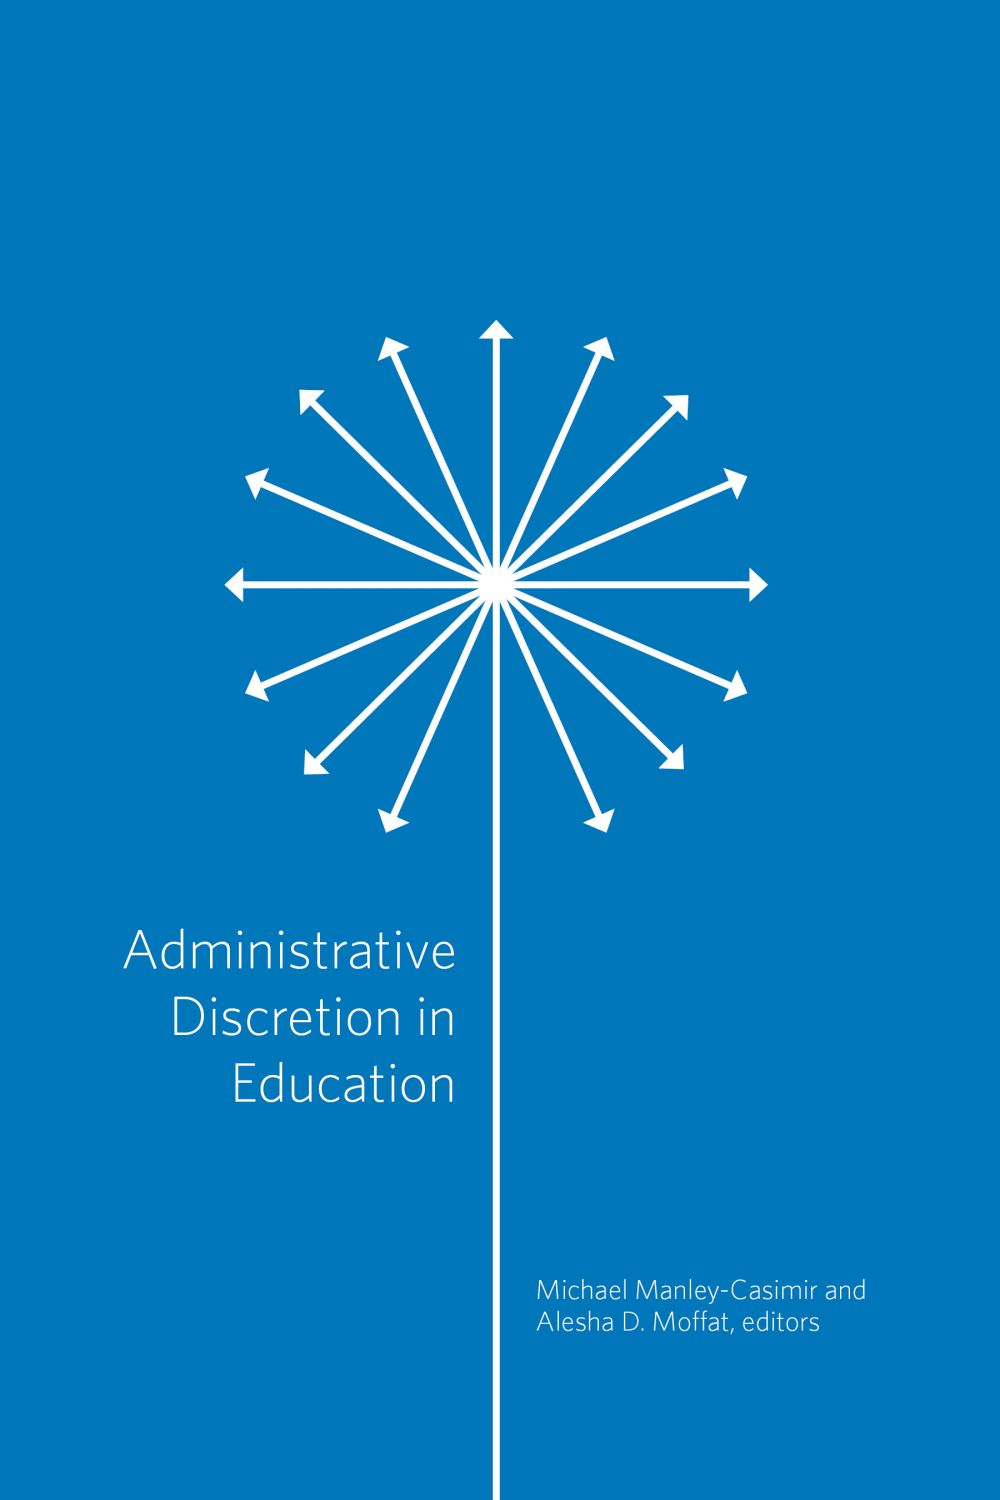 Administrative Discretion in Education